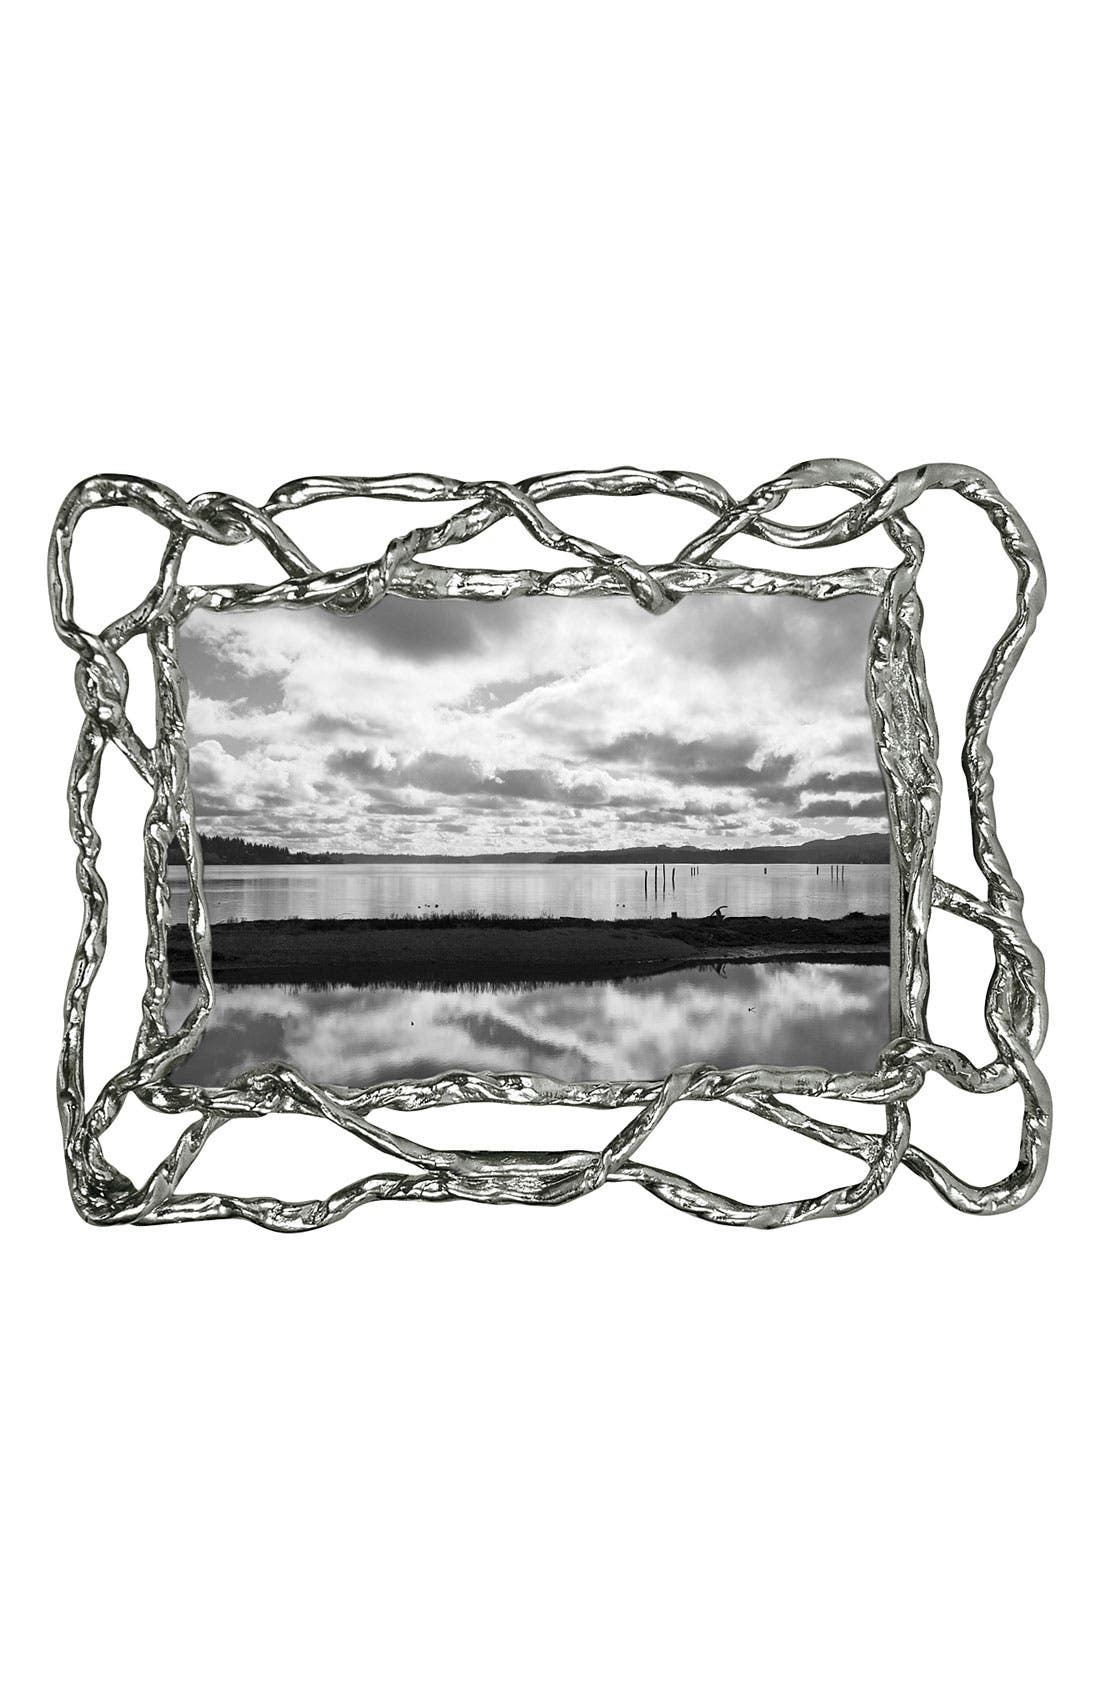 Alternate Image 1 Selected - Michael Aram 'Wisteria' Picture Frame (4x6)